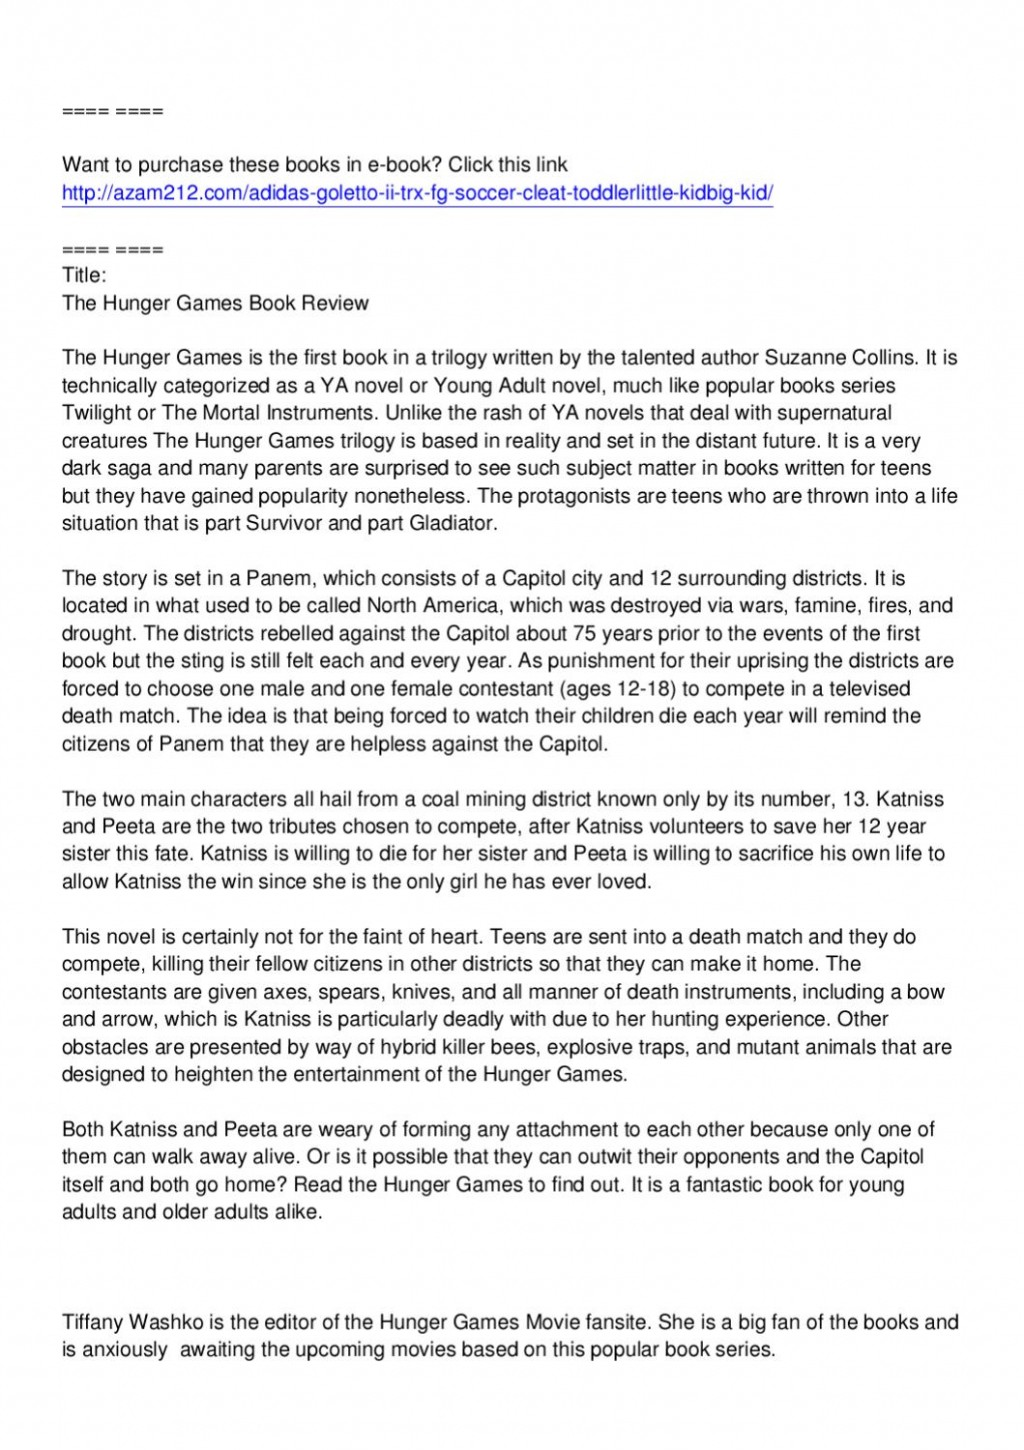 002 Page 1 Essay Example The Hunger Games Book Imposing Review Large